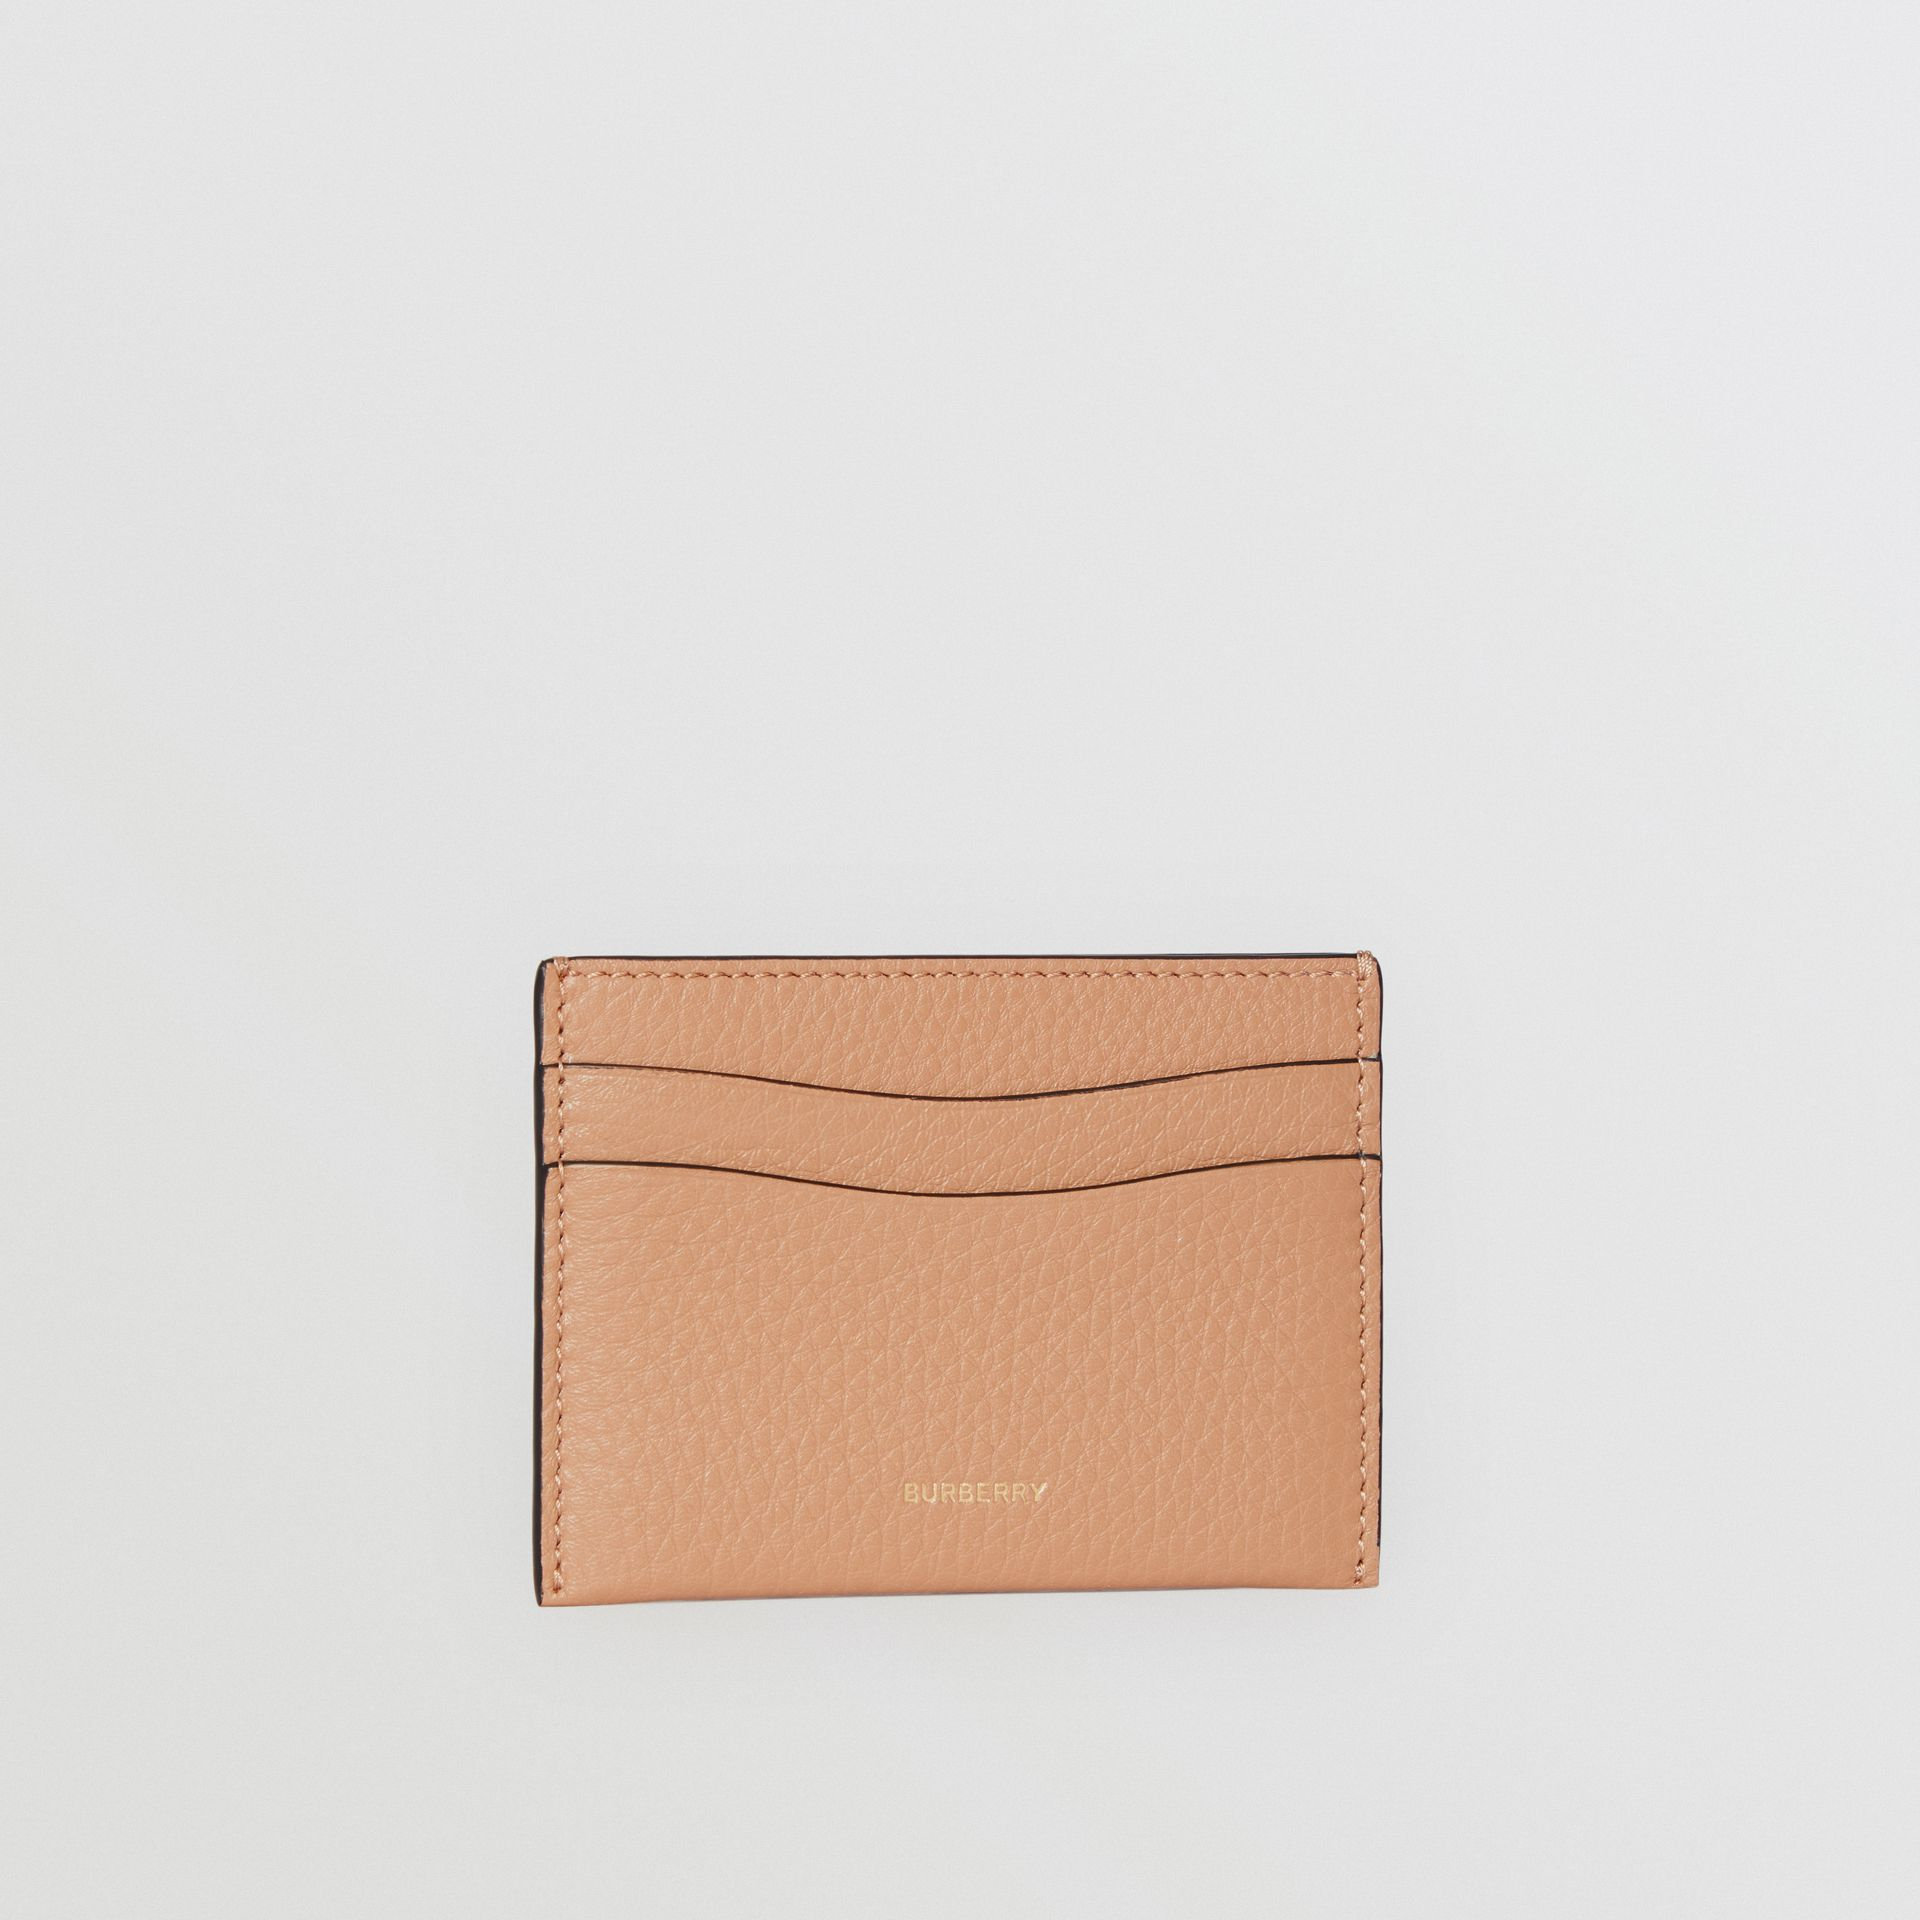 Grainy Leather Card Case in Light Camel - Women | Burberry - gallery image 3